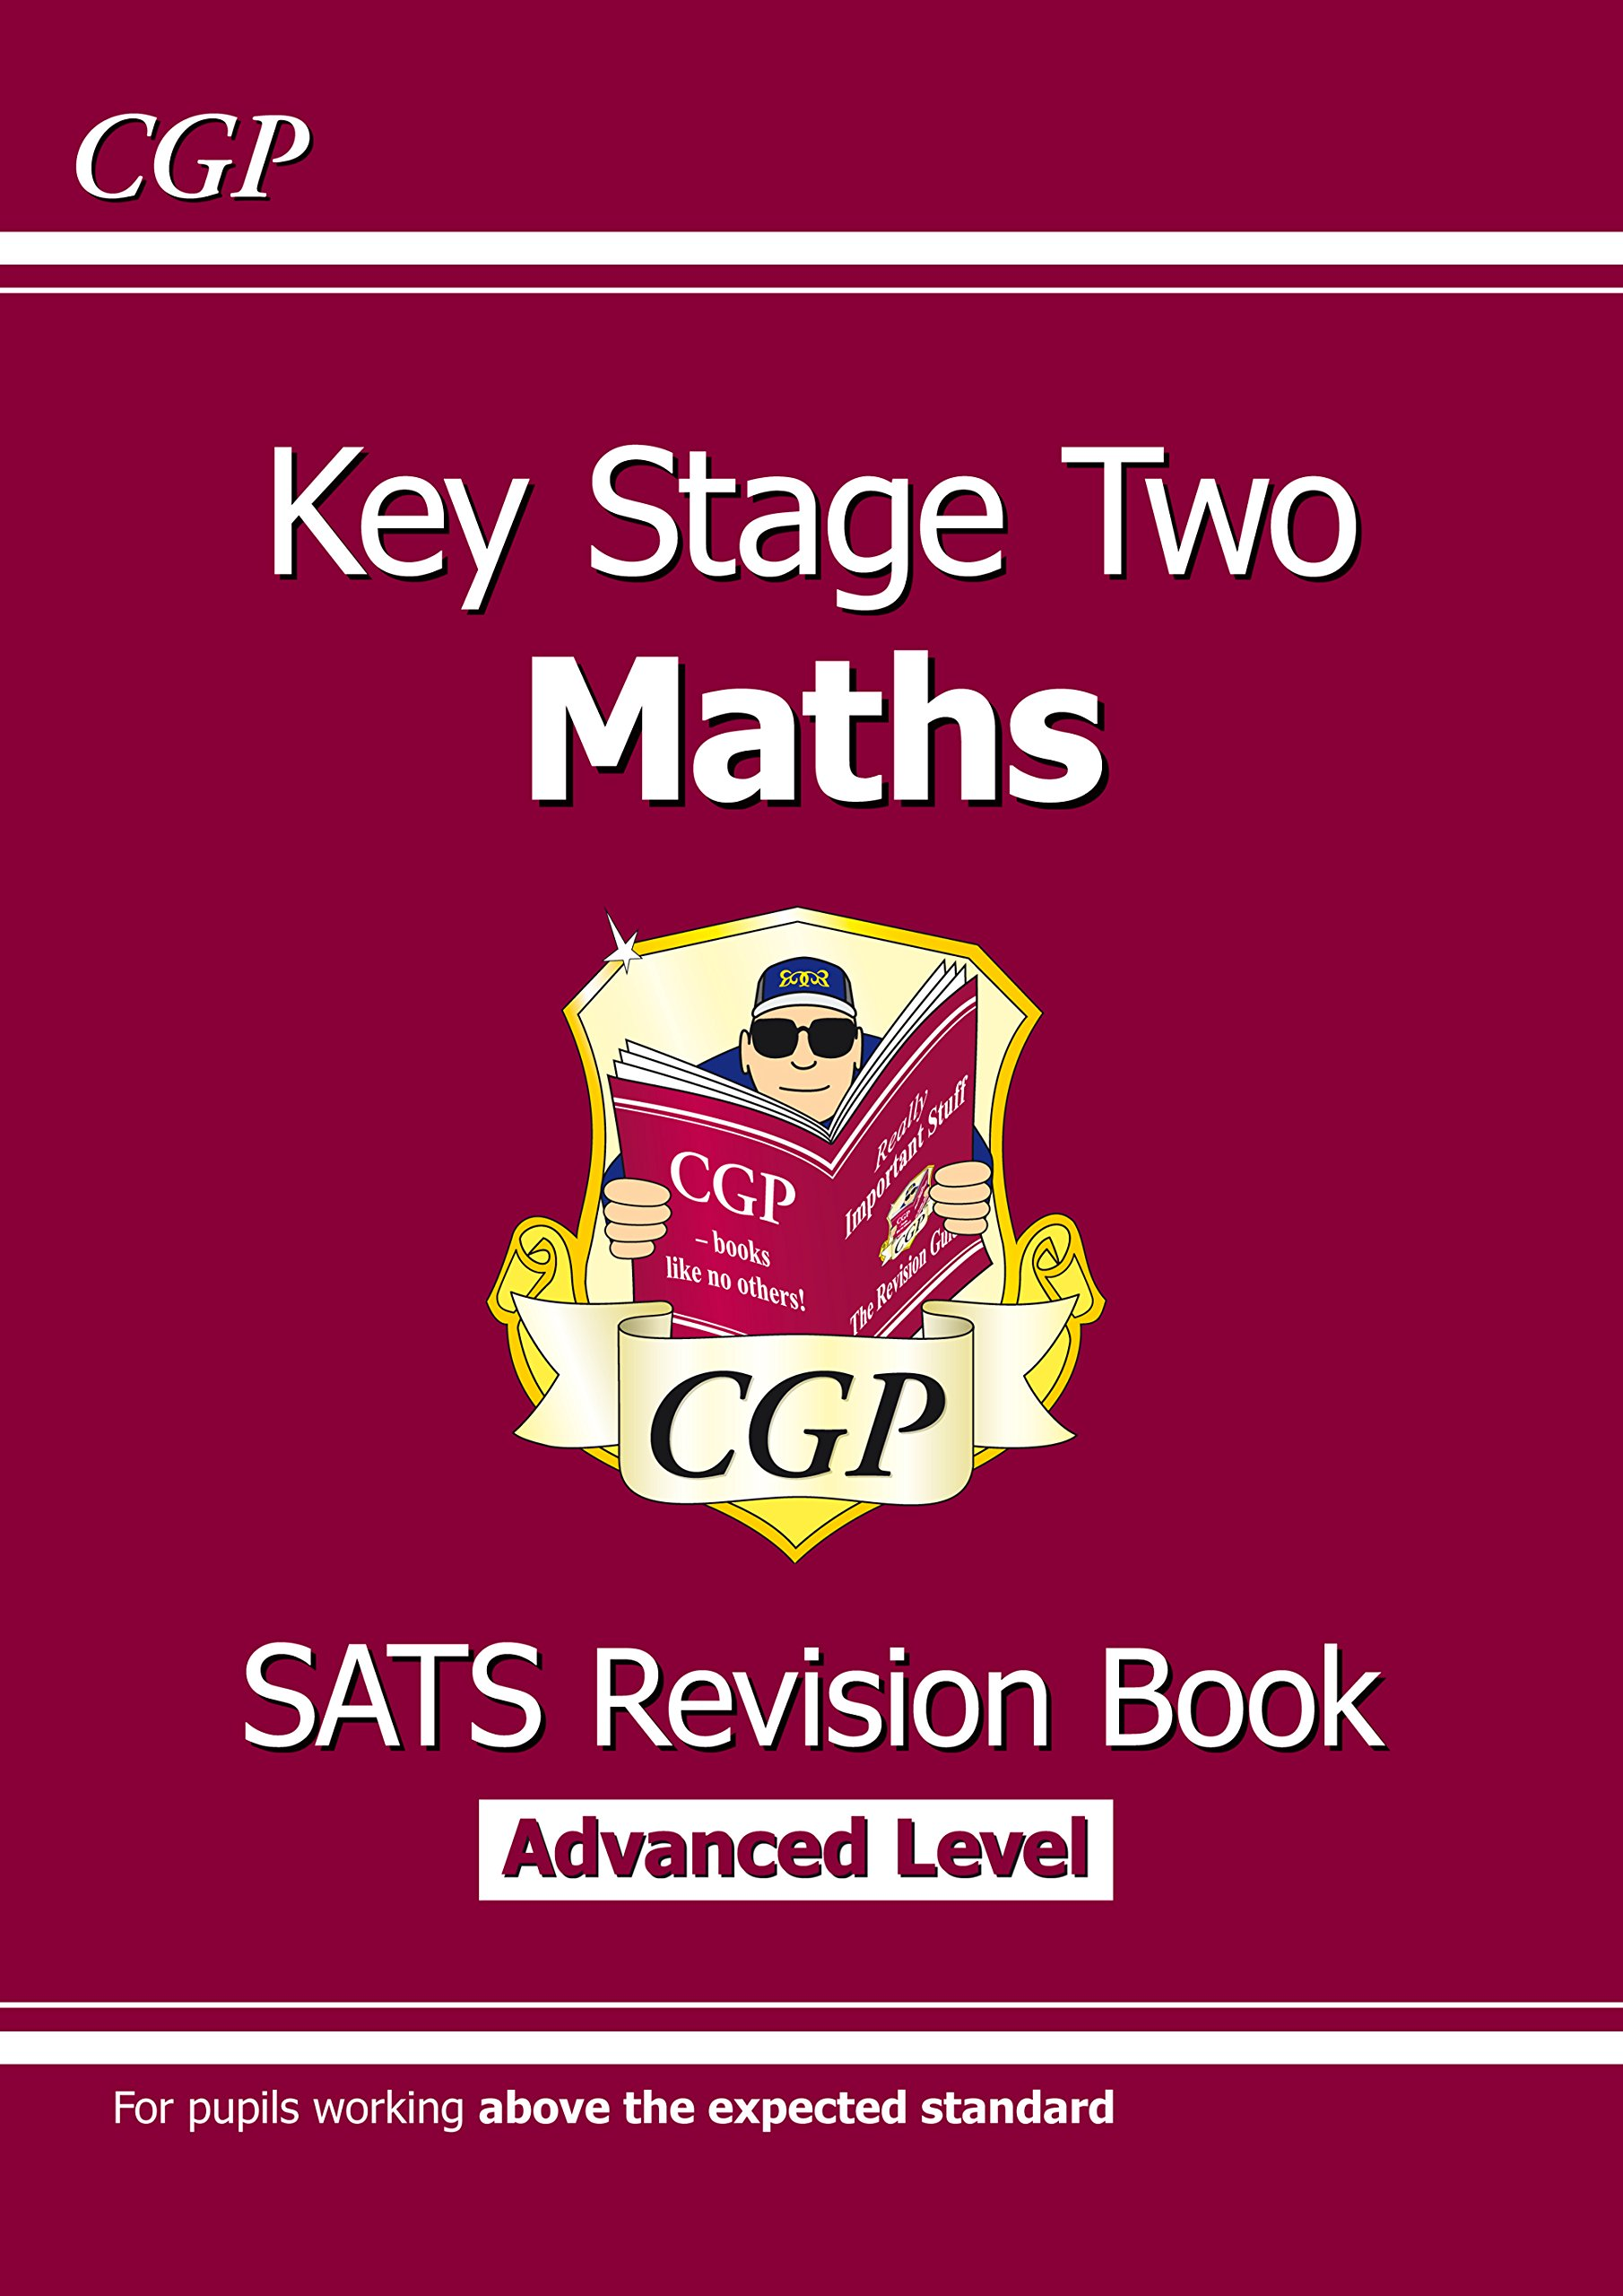 worksheet Sats Worksheets Ks2 ks2 maths targeted sats revision book advanced level for tests in 2018 and beyond cgp amazon co uk cgp